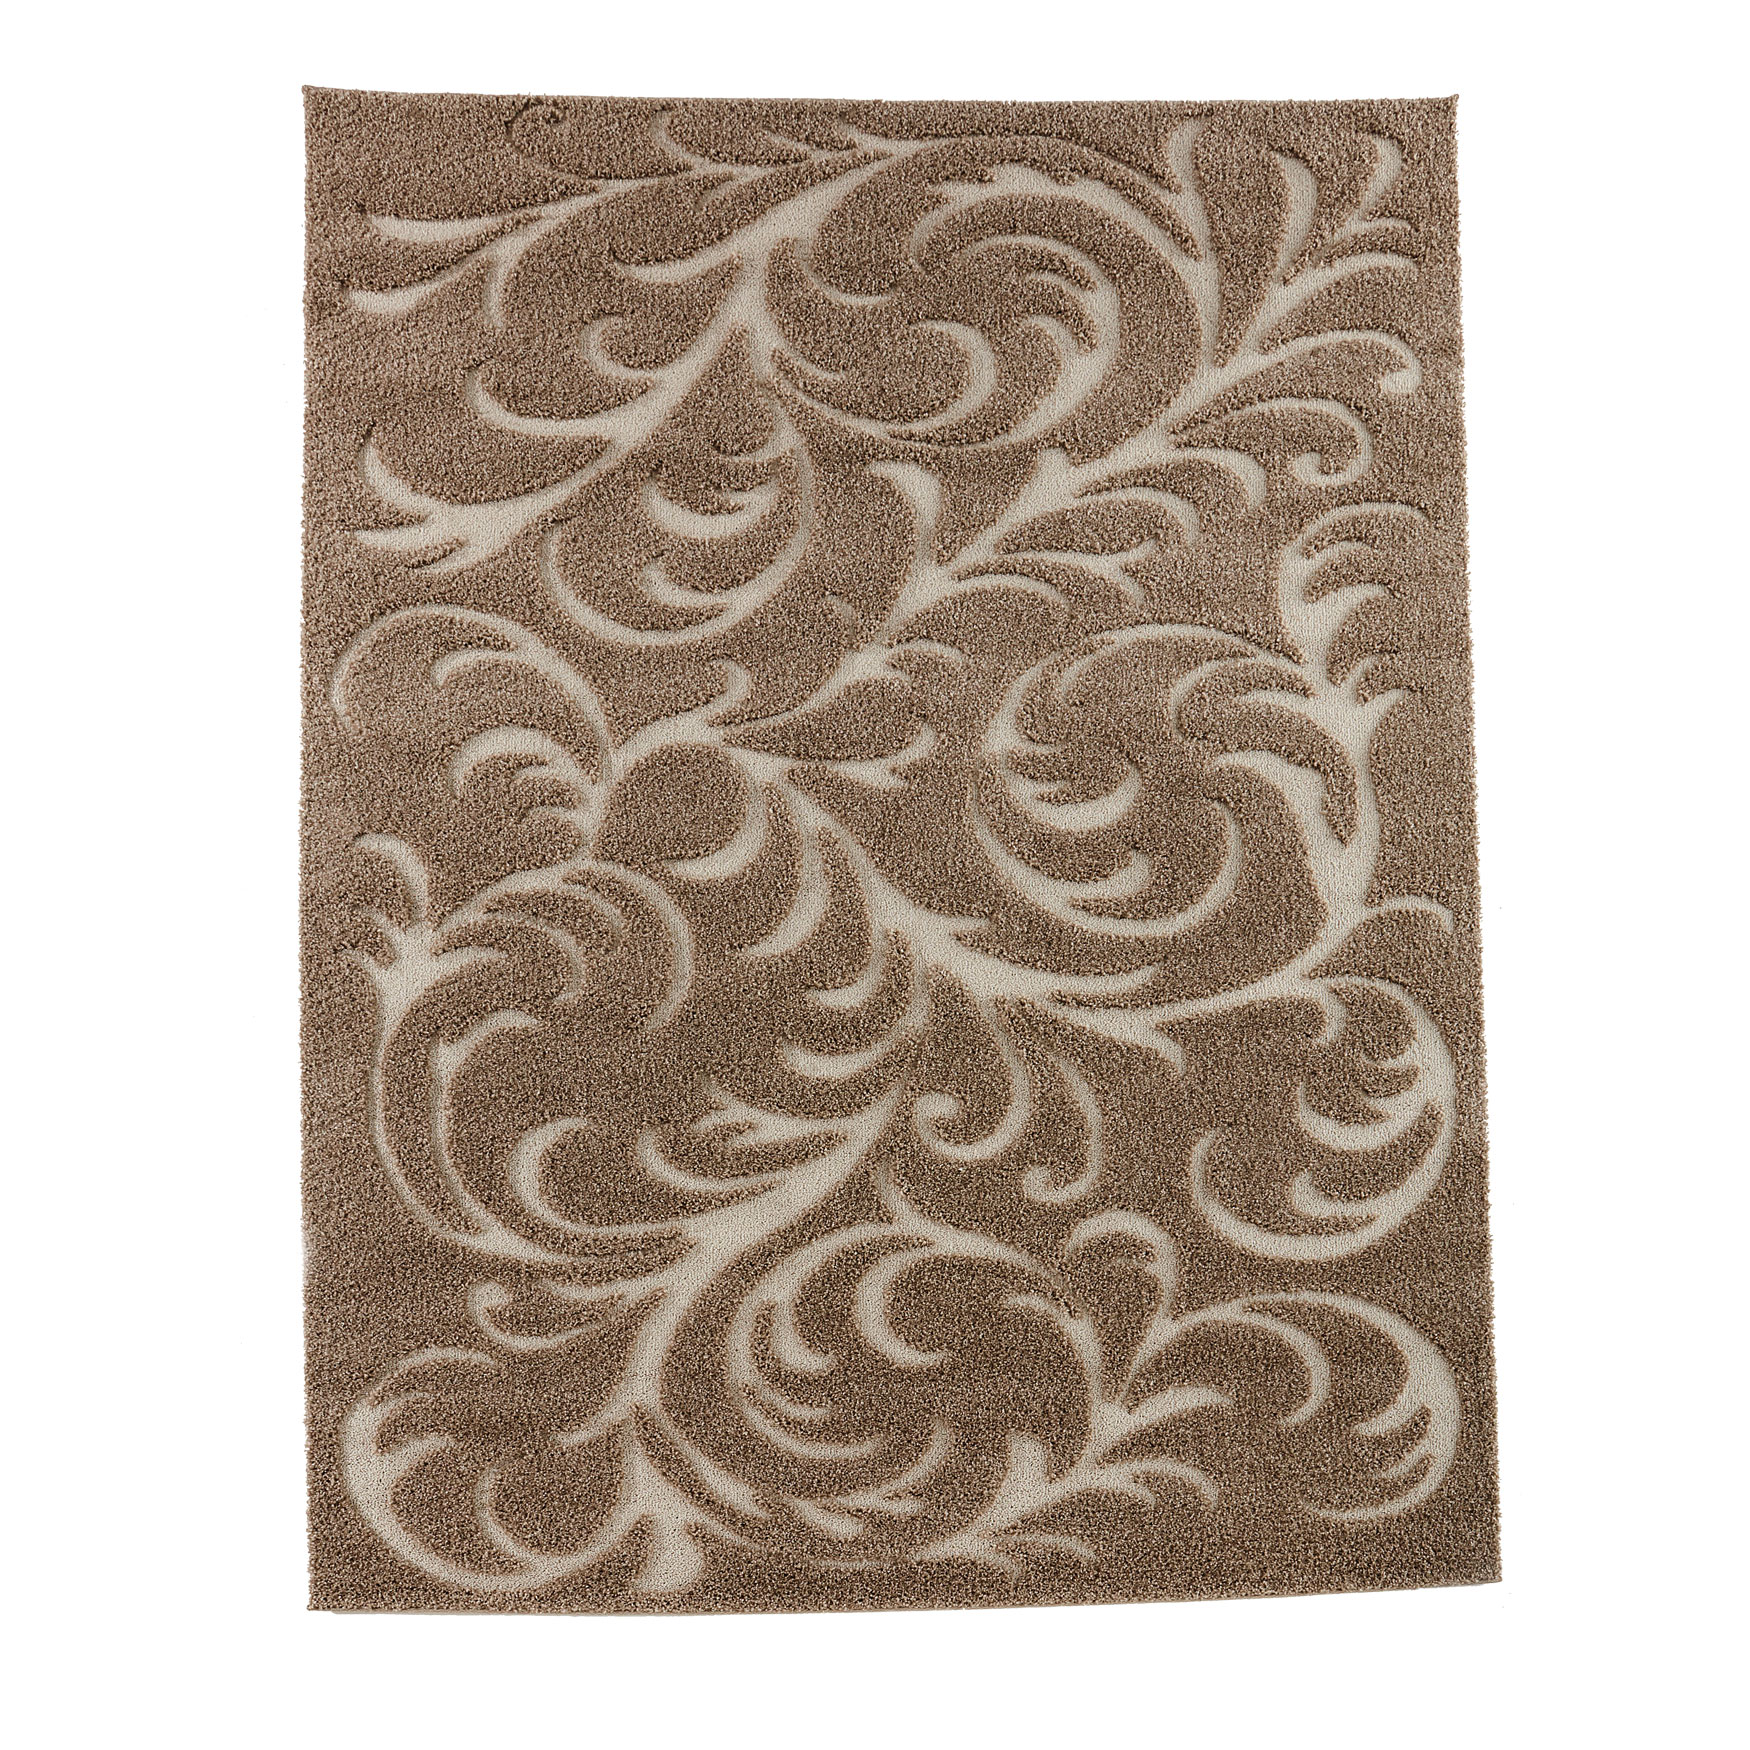 Large Winding Vines High-Low Rug ,